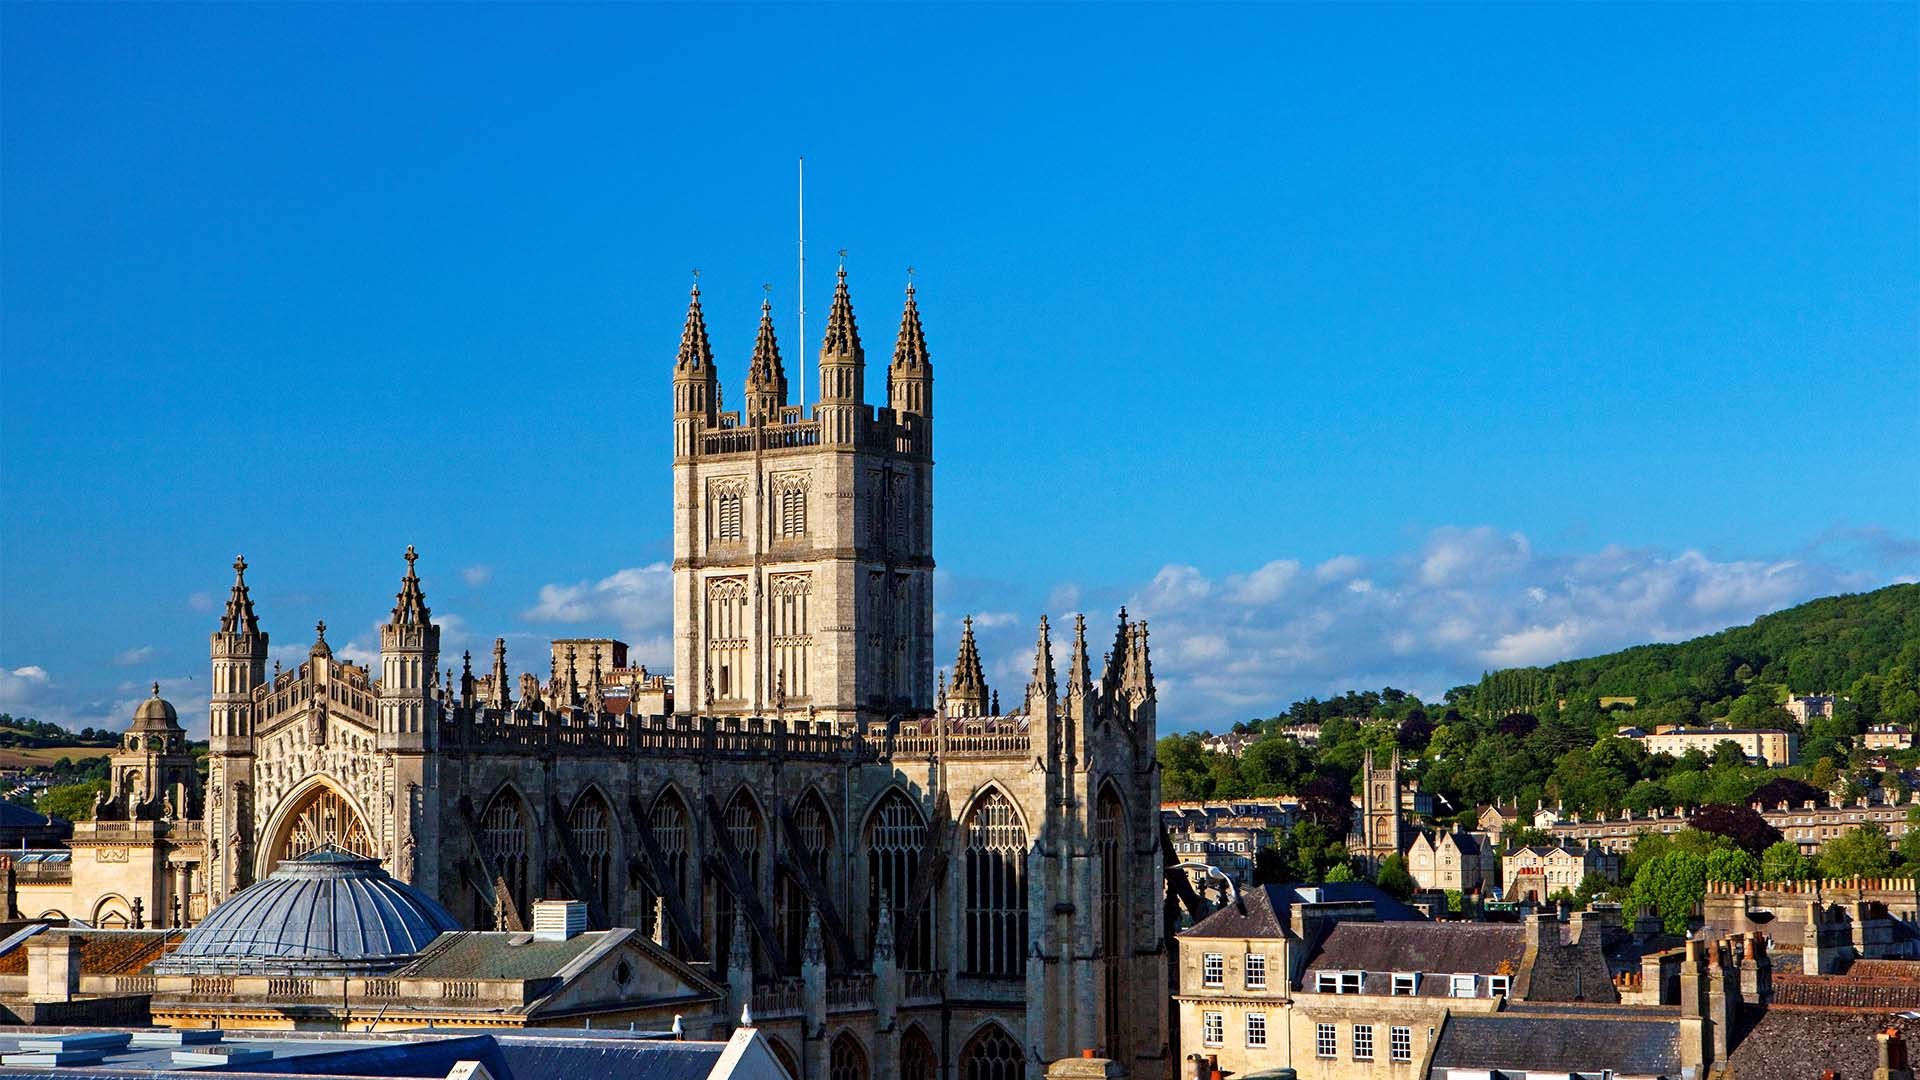 View across the rooftops to Bath Abbey